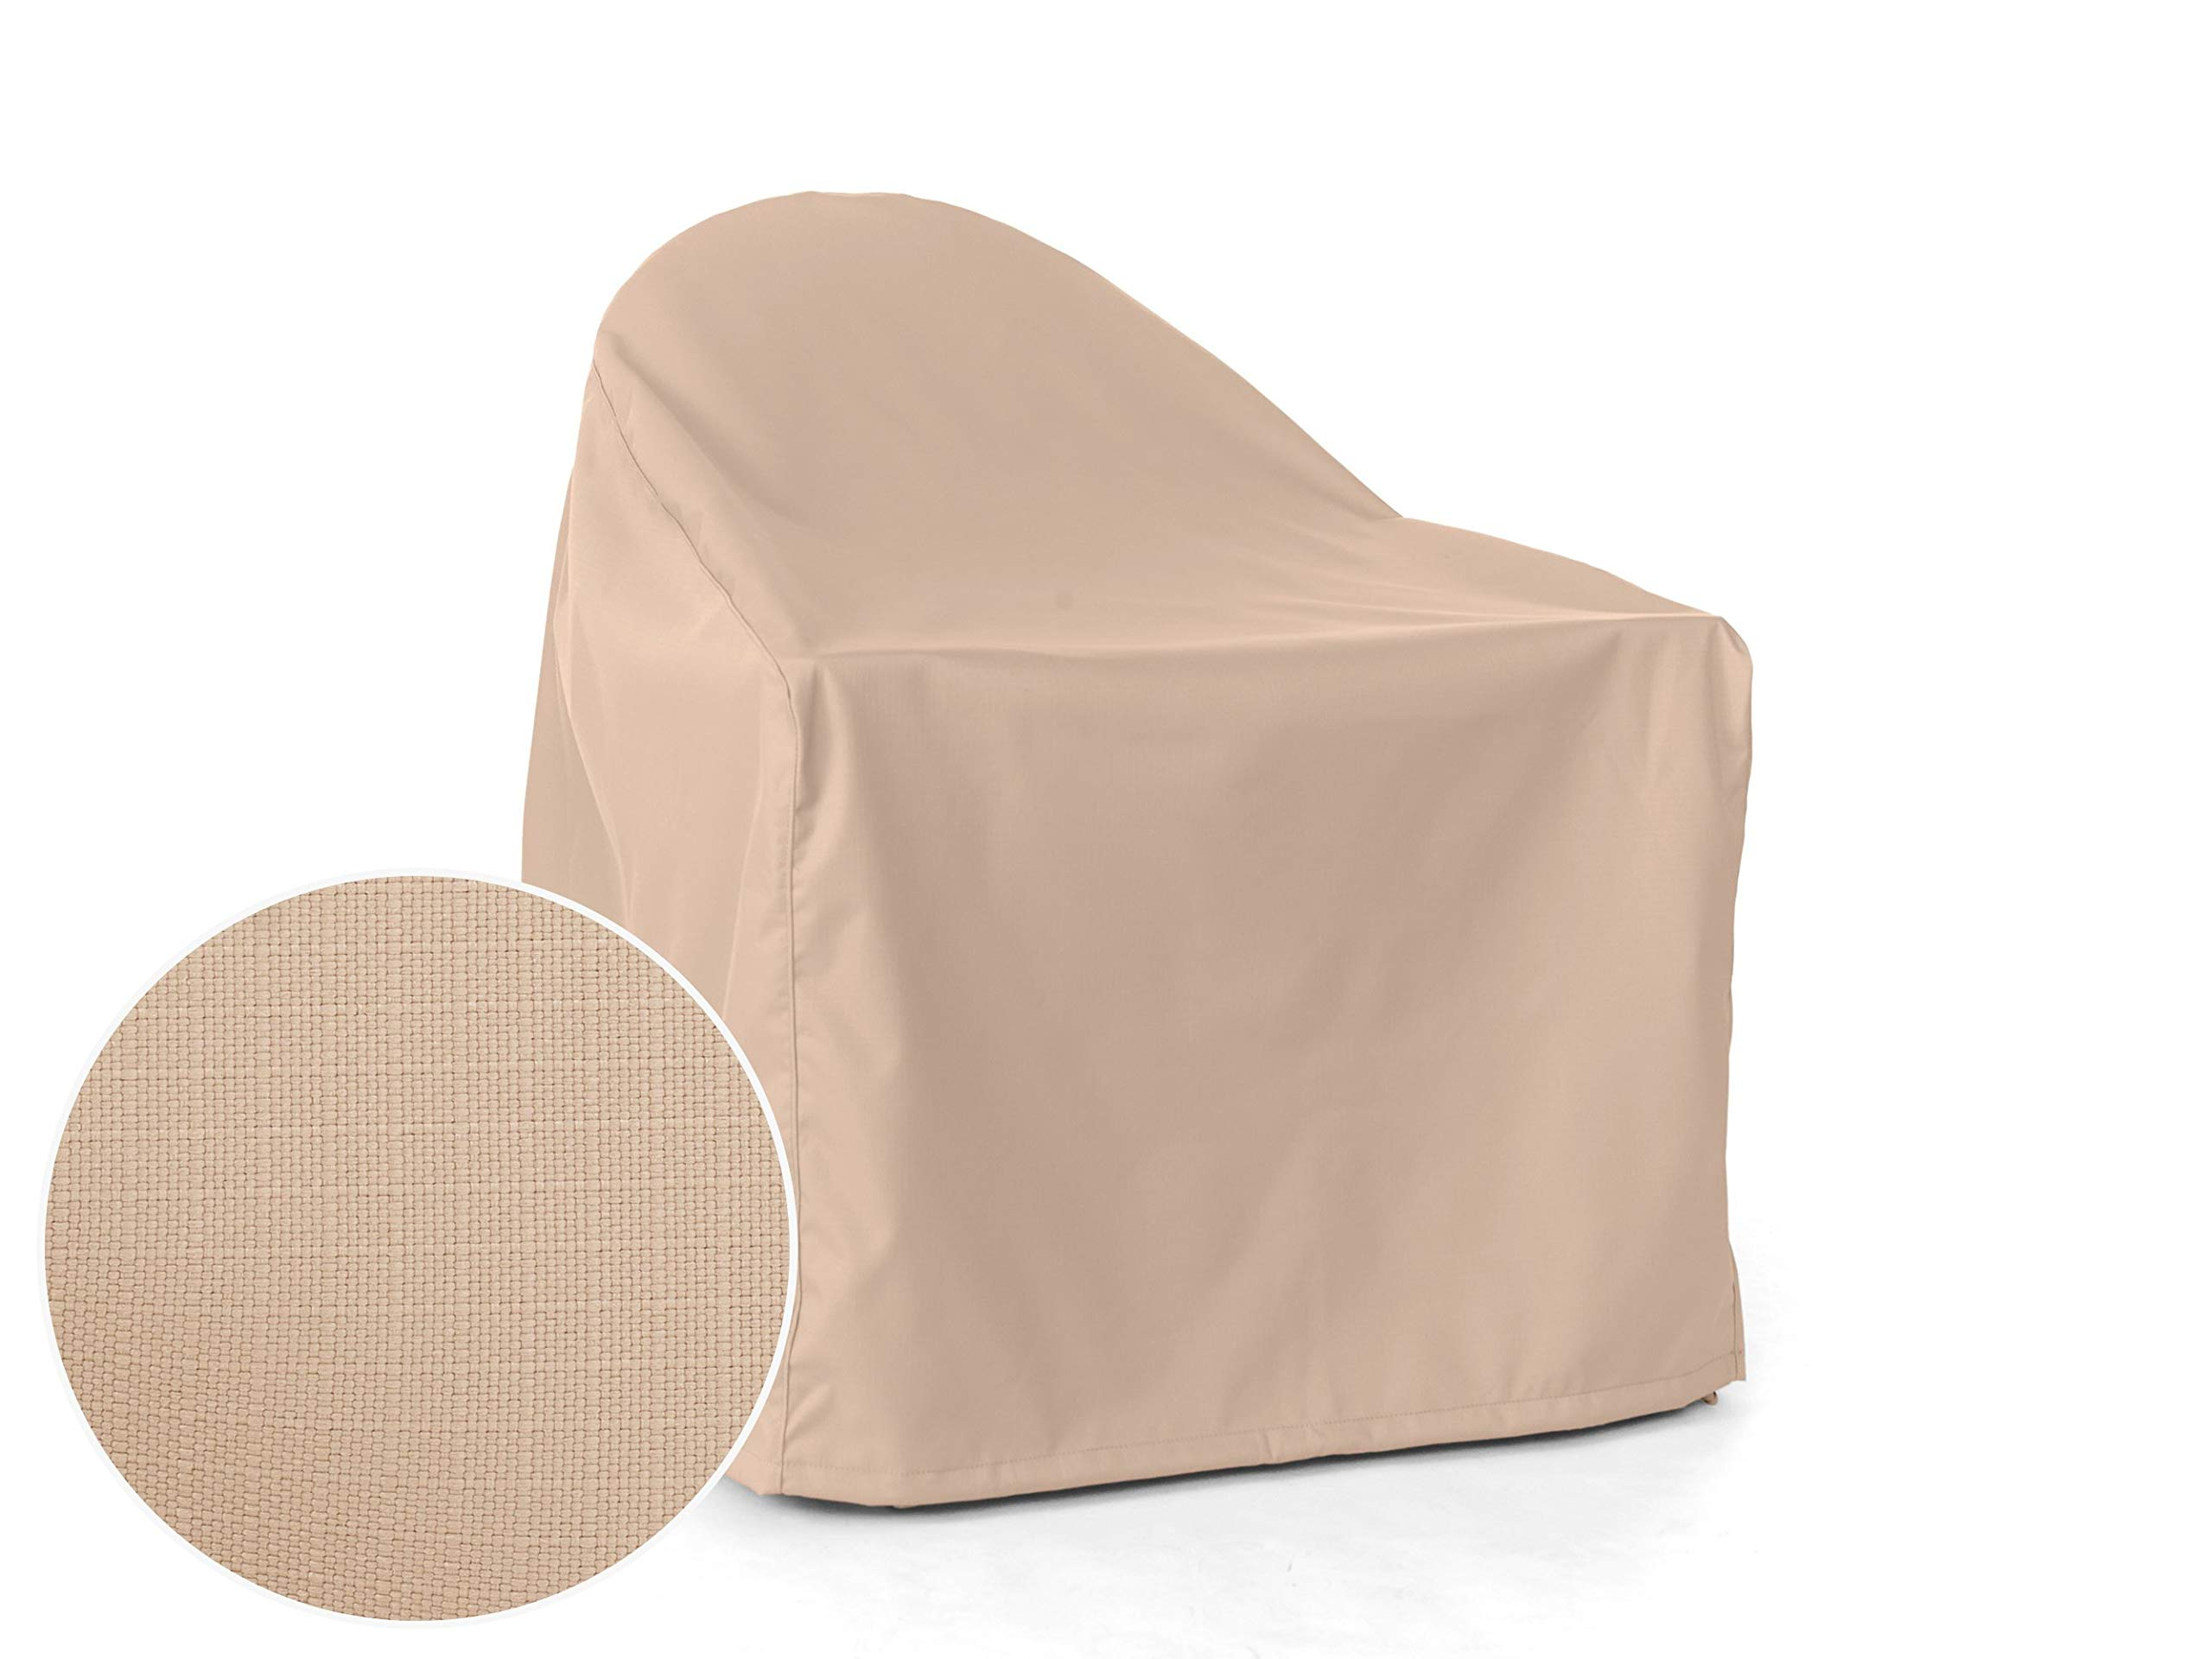 CoverMates: Adirondack Chair Cover - Fits 32 Inch Width x 34 Inch Depth x 38 Inch Height - Ultima Ripstop - 600D UV/Water Resistant Poly - Covered Vent - 4 Buckle Straps - 7YR Warranty- Ripstop Tan